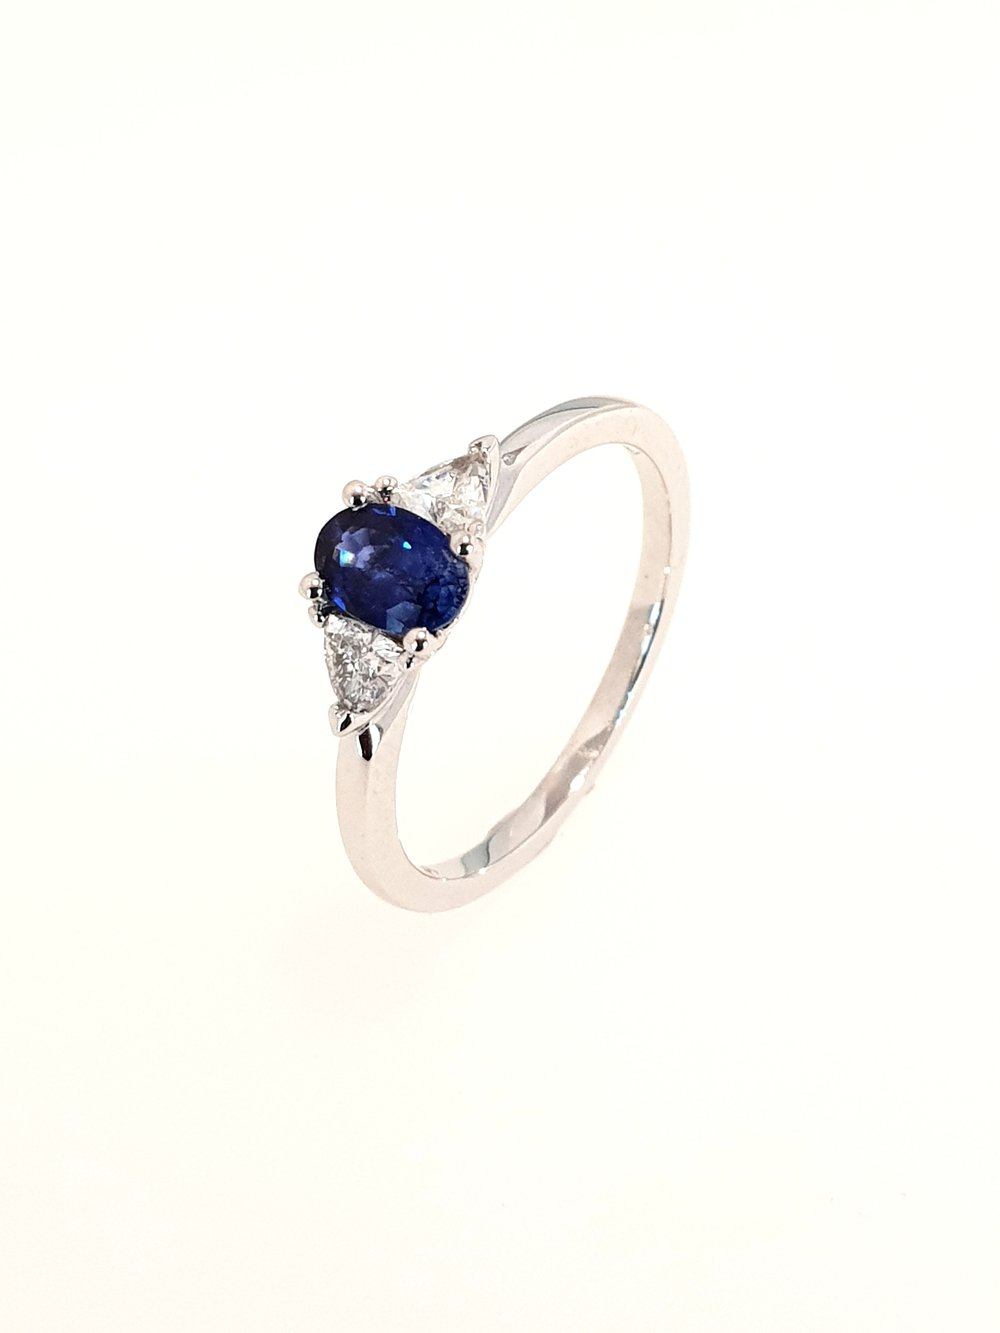 18ct White Gold Sapphire(.54ct) & Diamond Ring  Diamond: .28ct, G, Si1  Stock Code: N8946  £1950